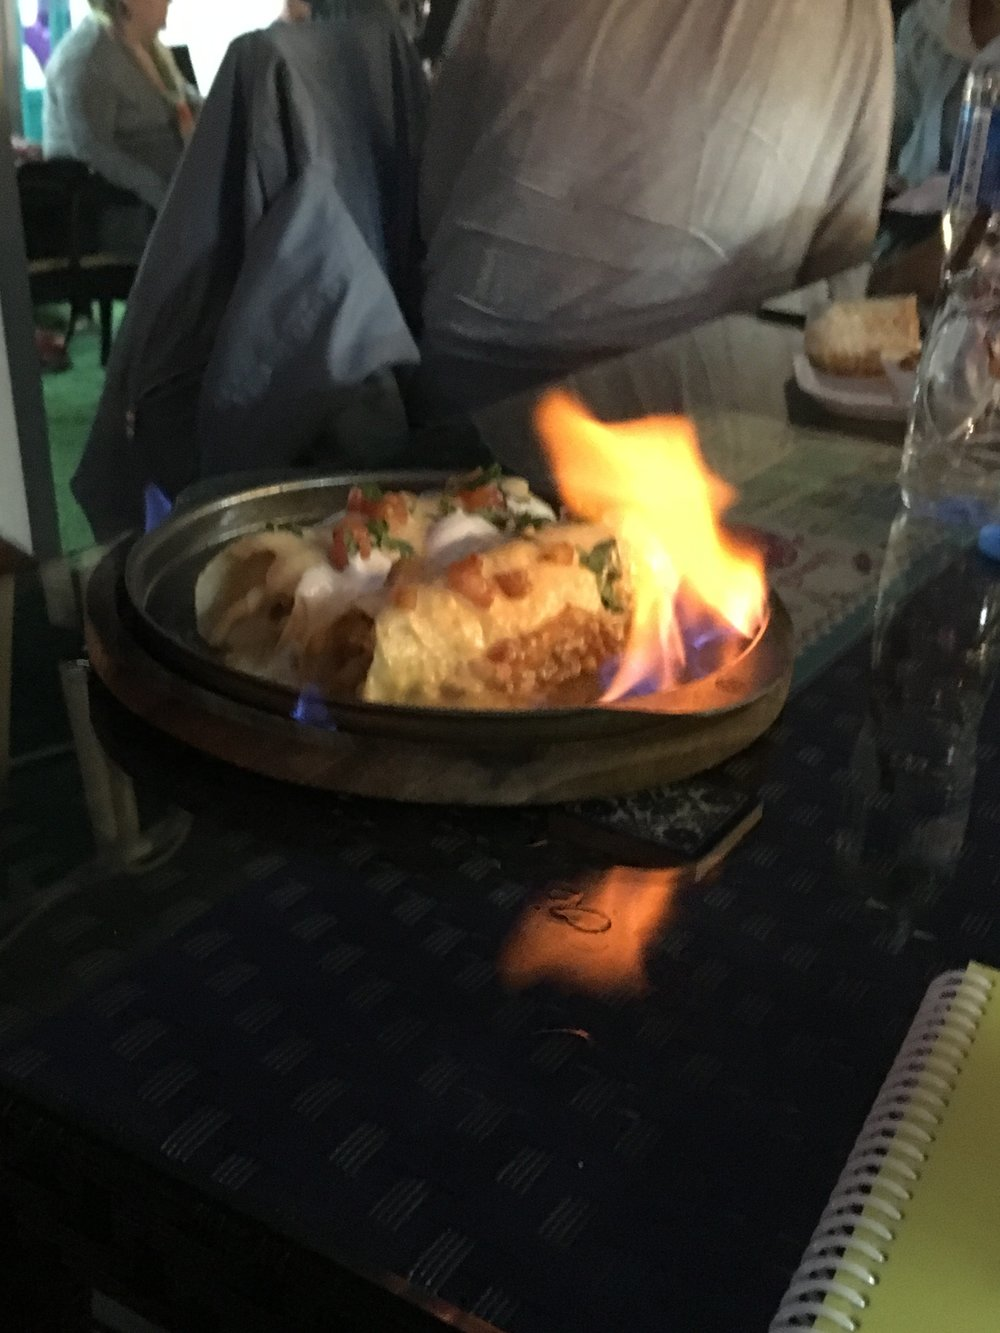 Flaming enchillades at Gringo's restaurant, Vientiane